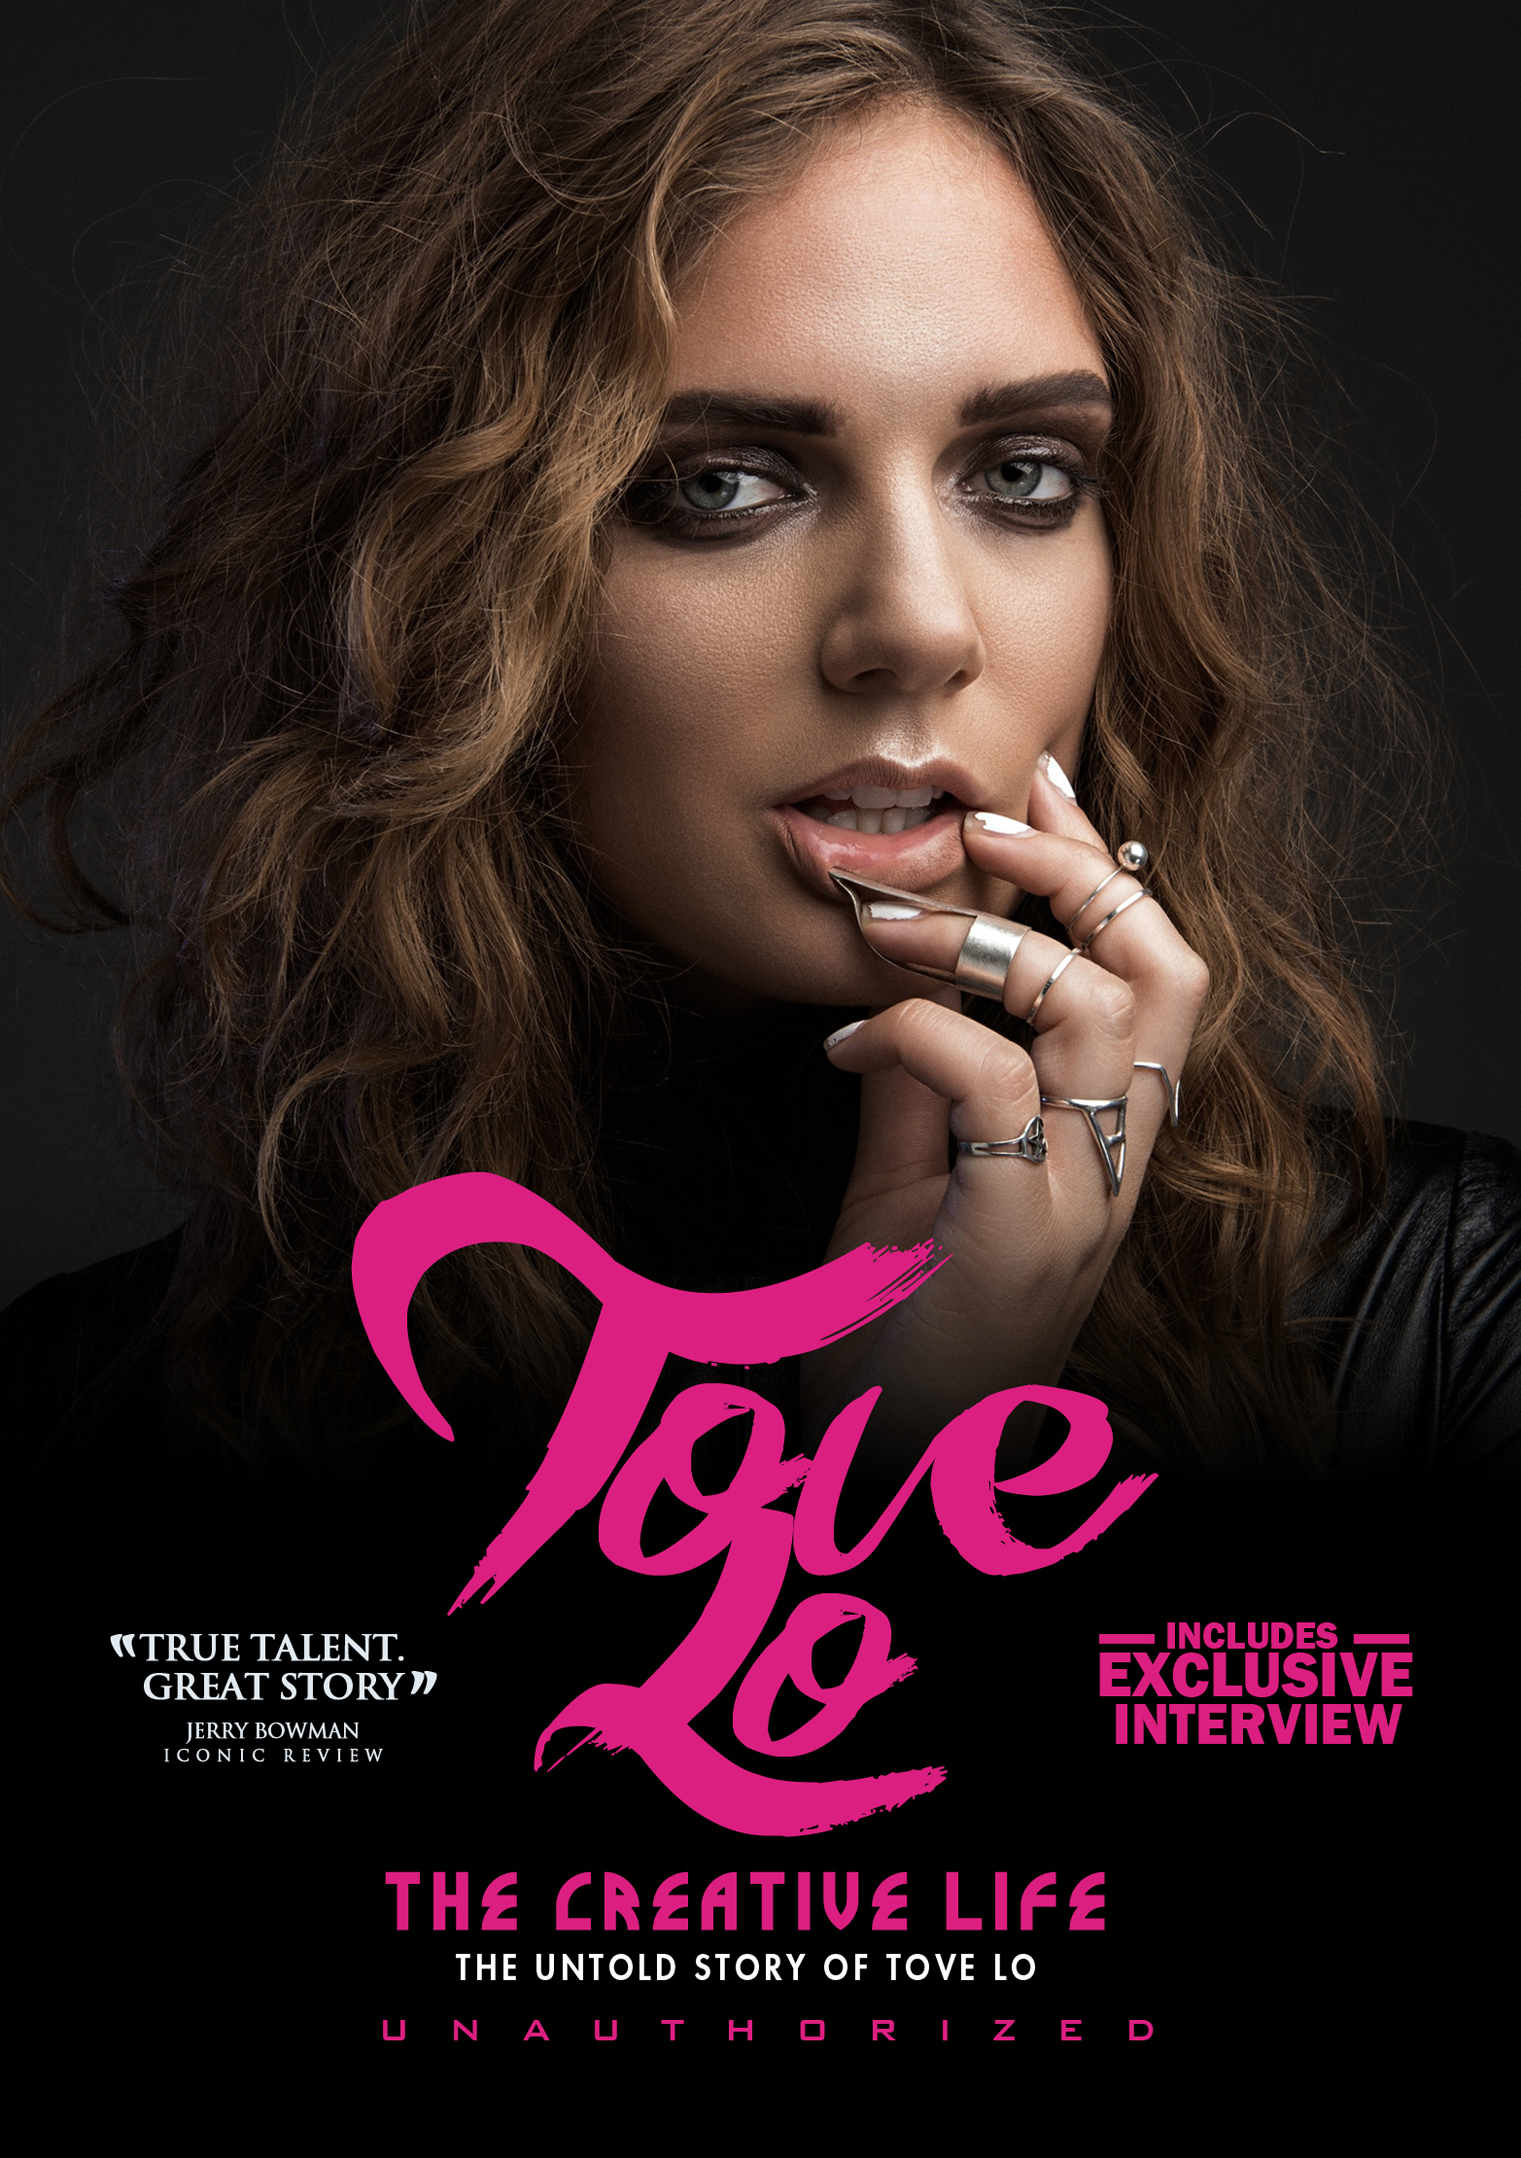 Tove Lo: The Creative Life - The Untold Story of Tove Lo